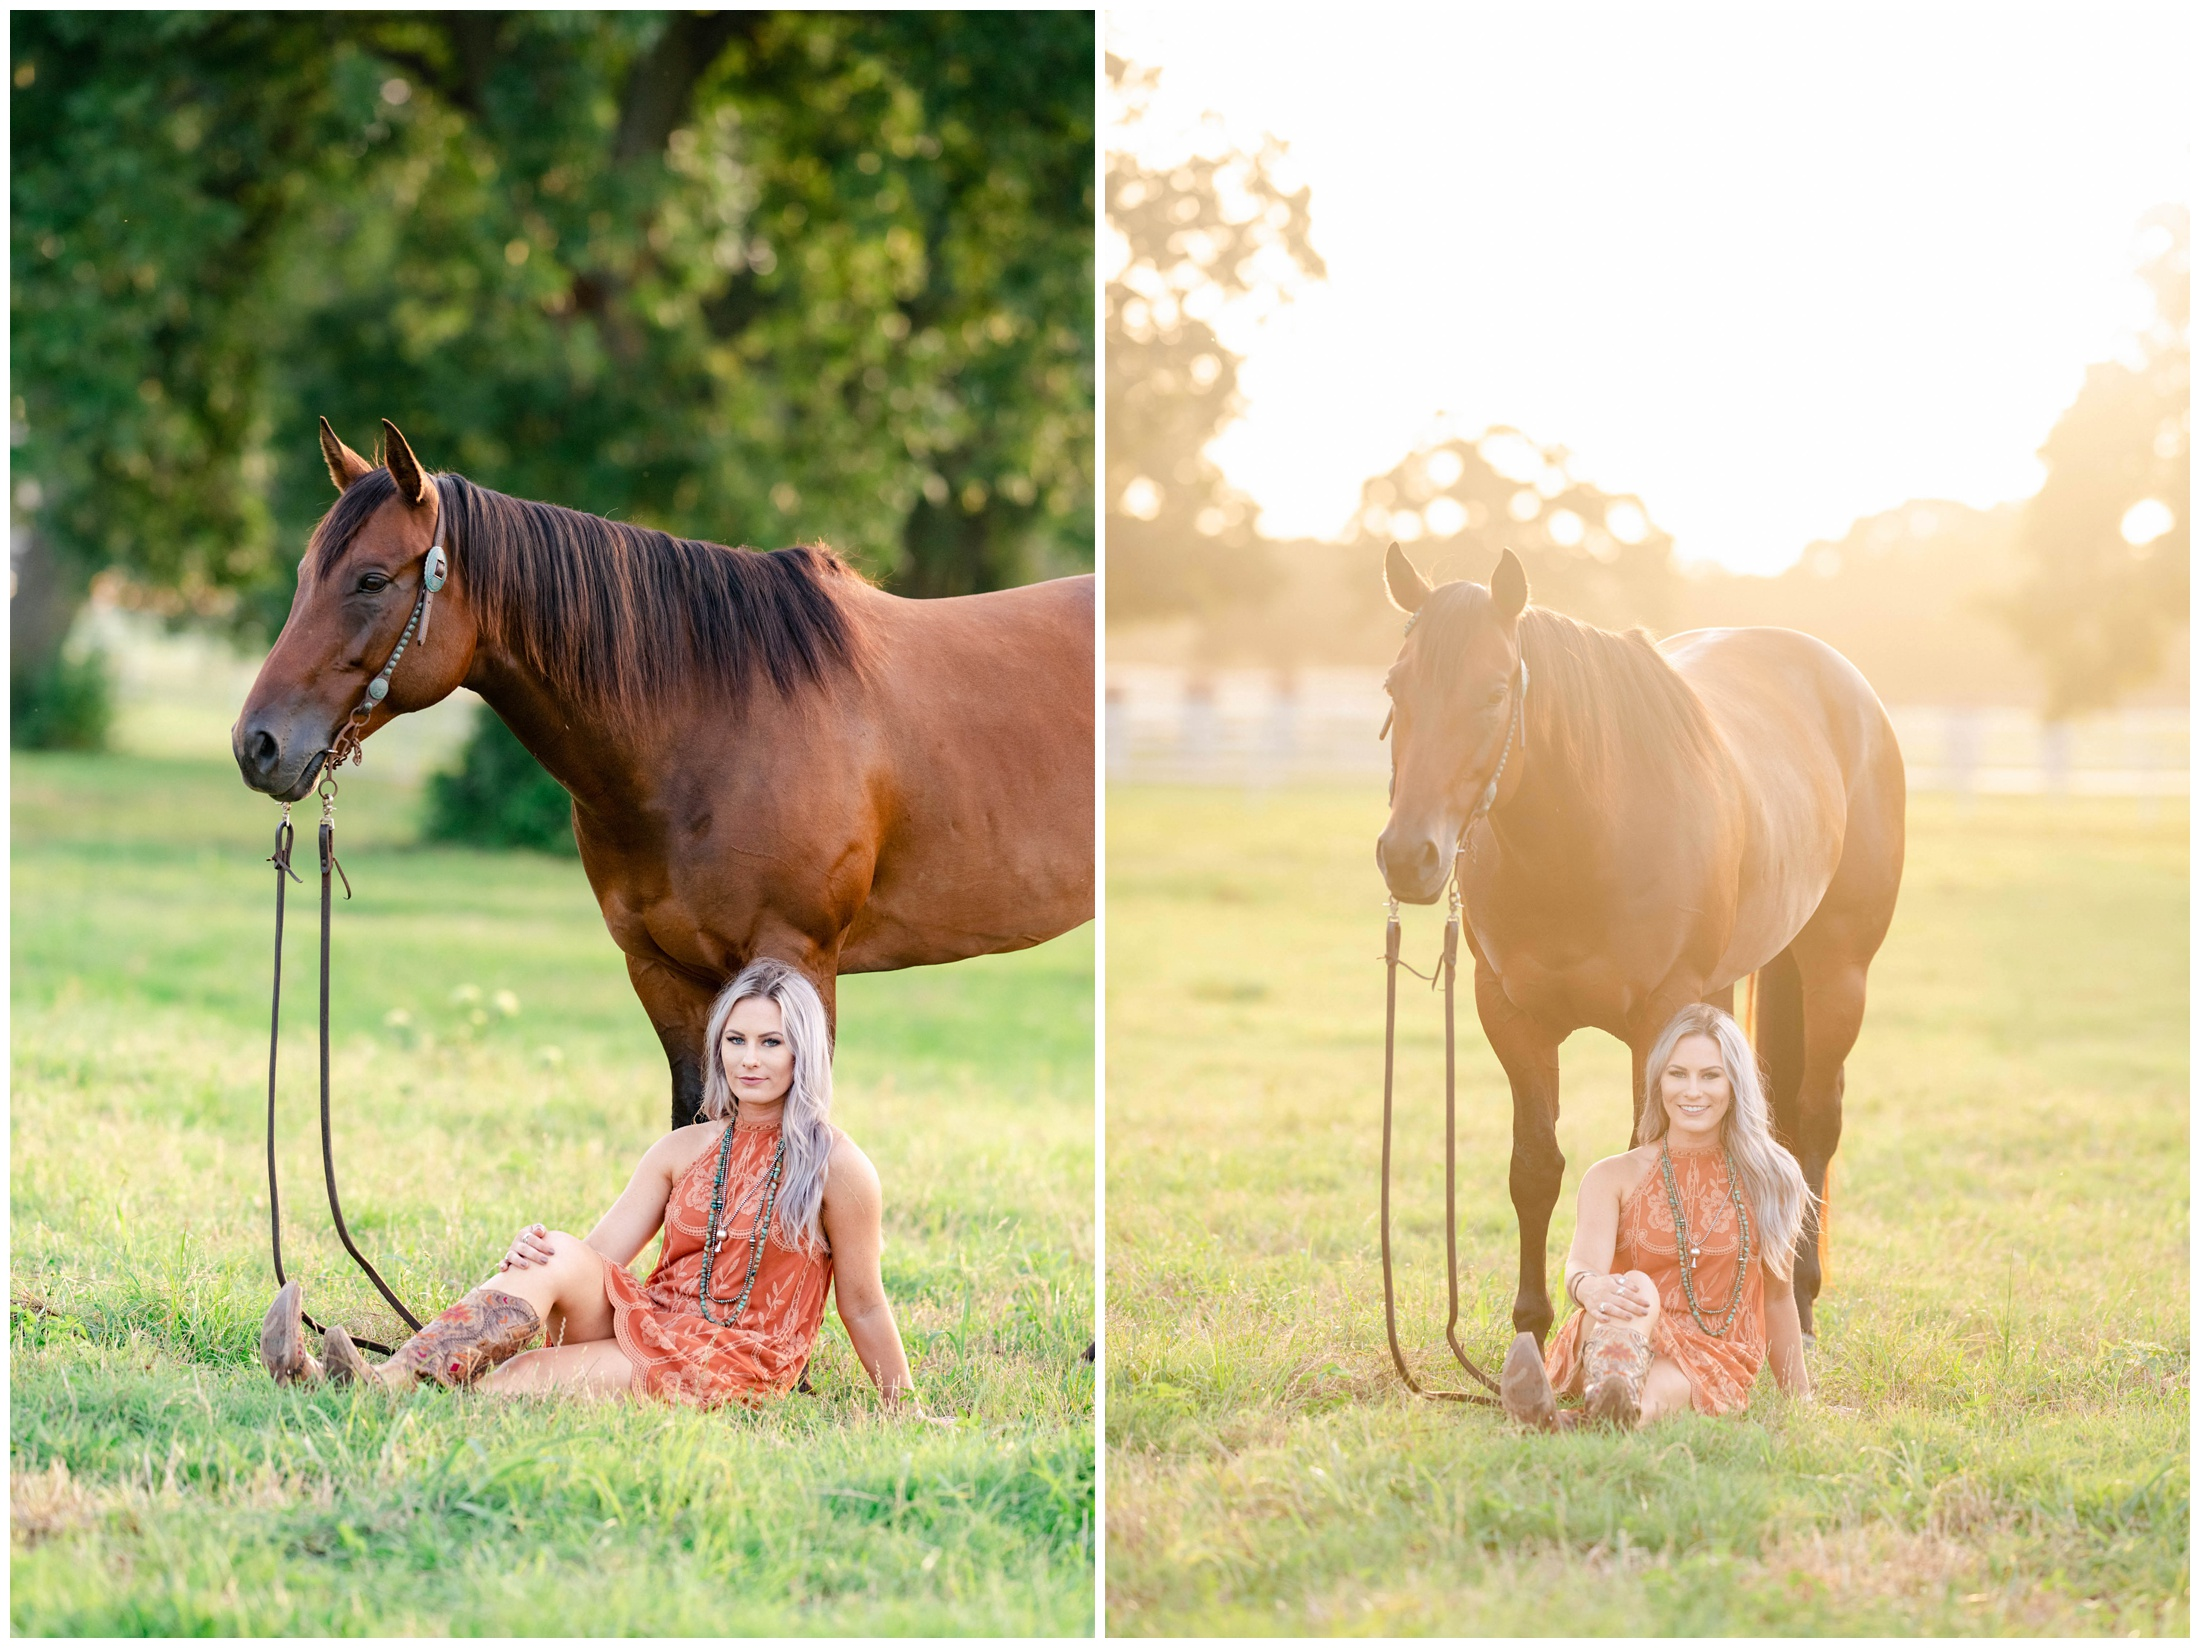 Behind the scenes shot of KMP and a young girl in a field